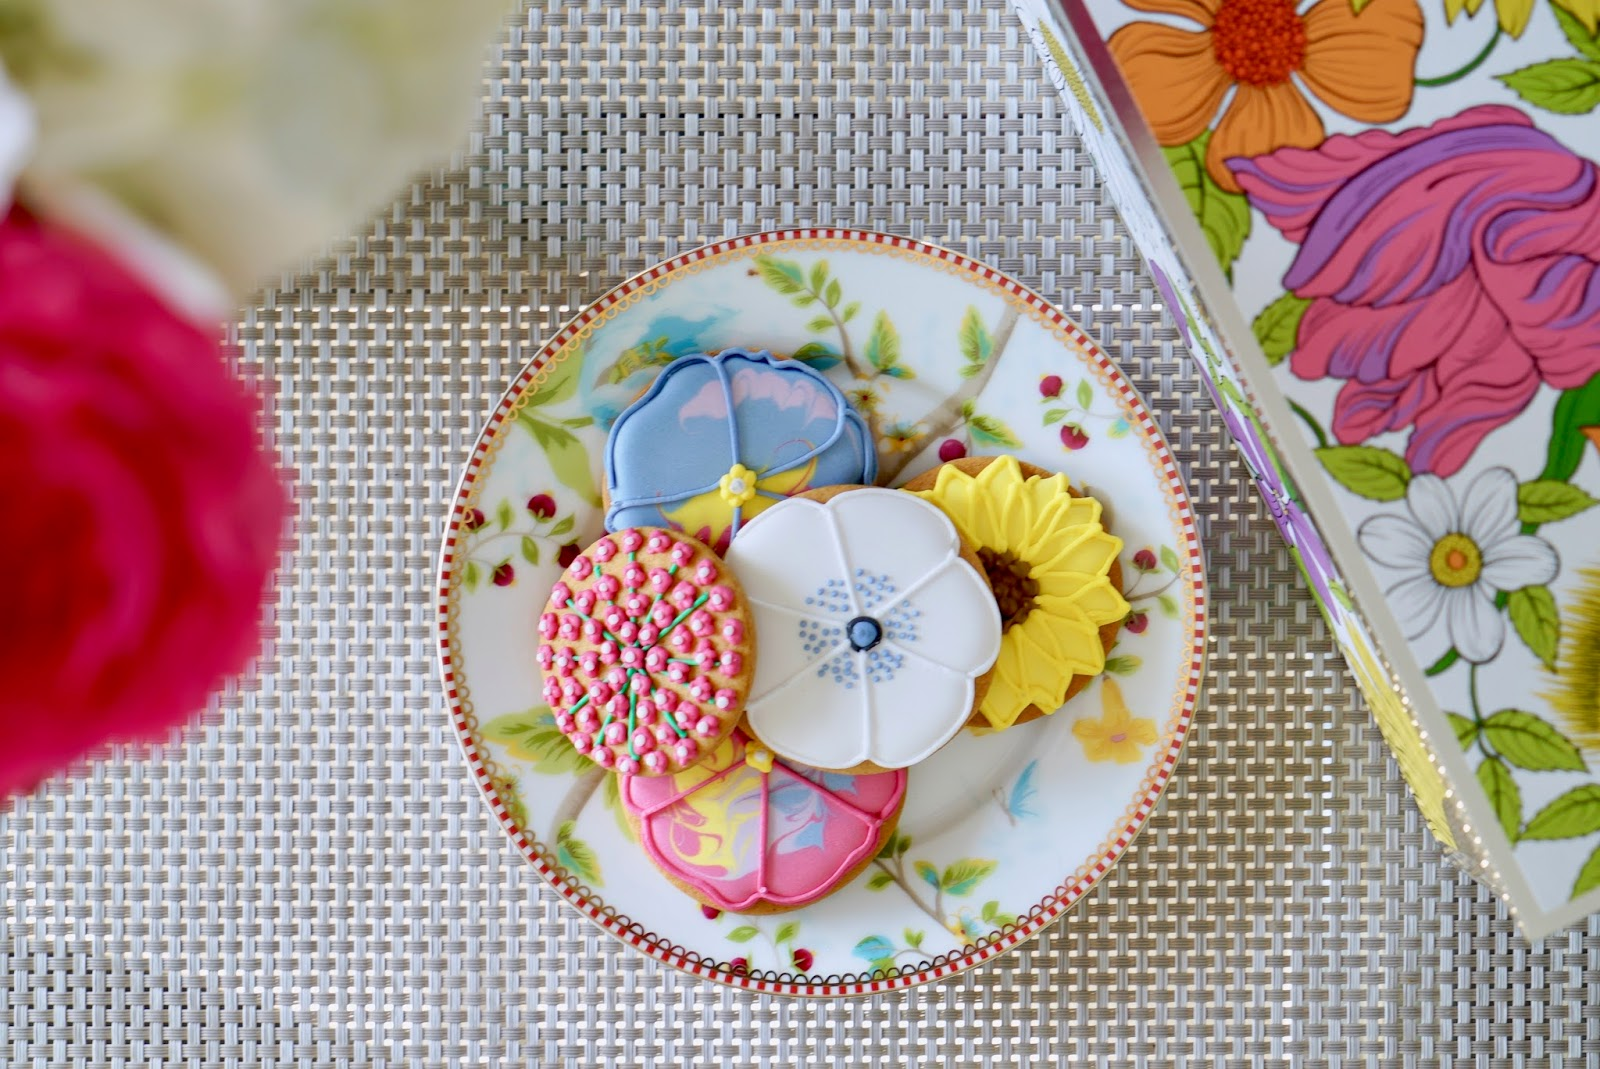 Biscuiteers mother's day biscuits